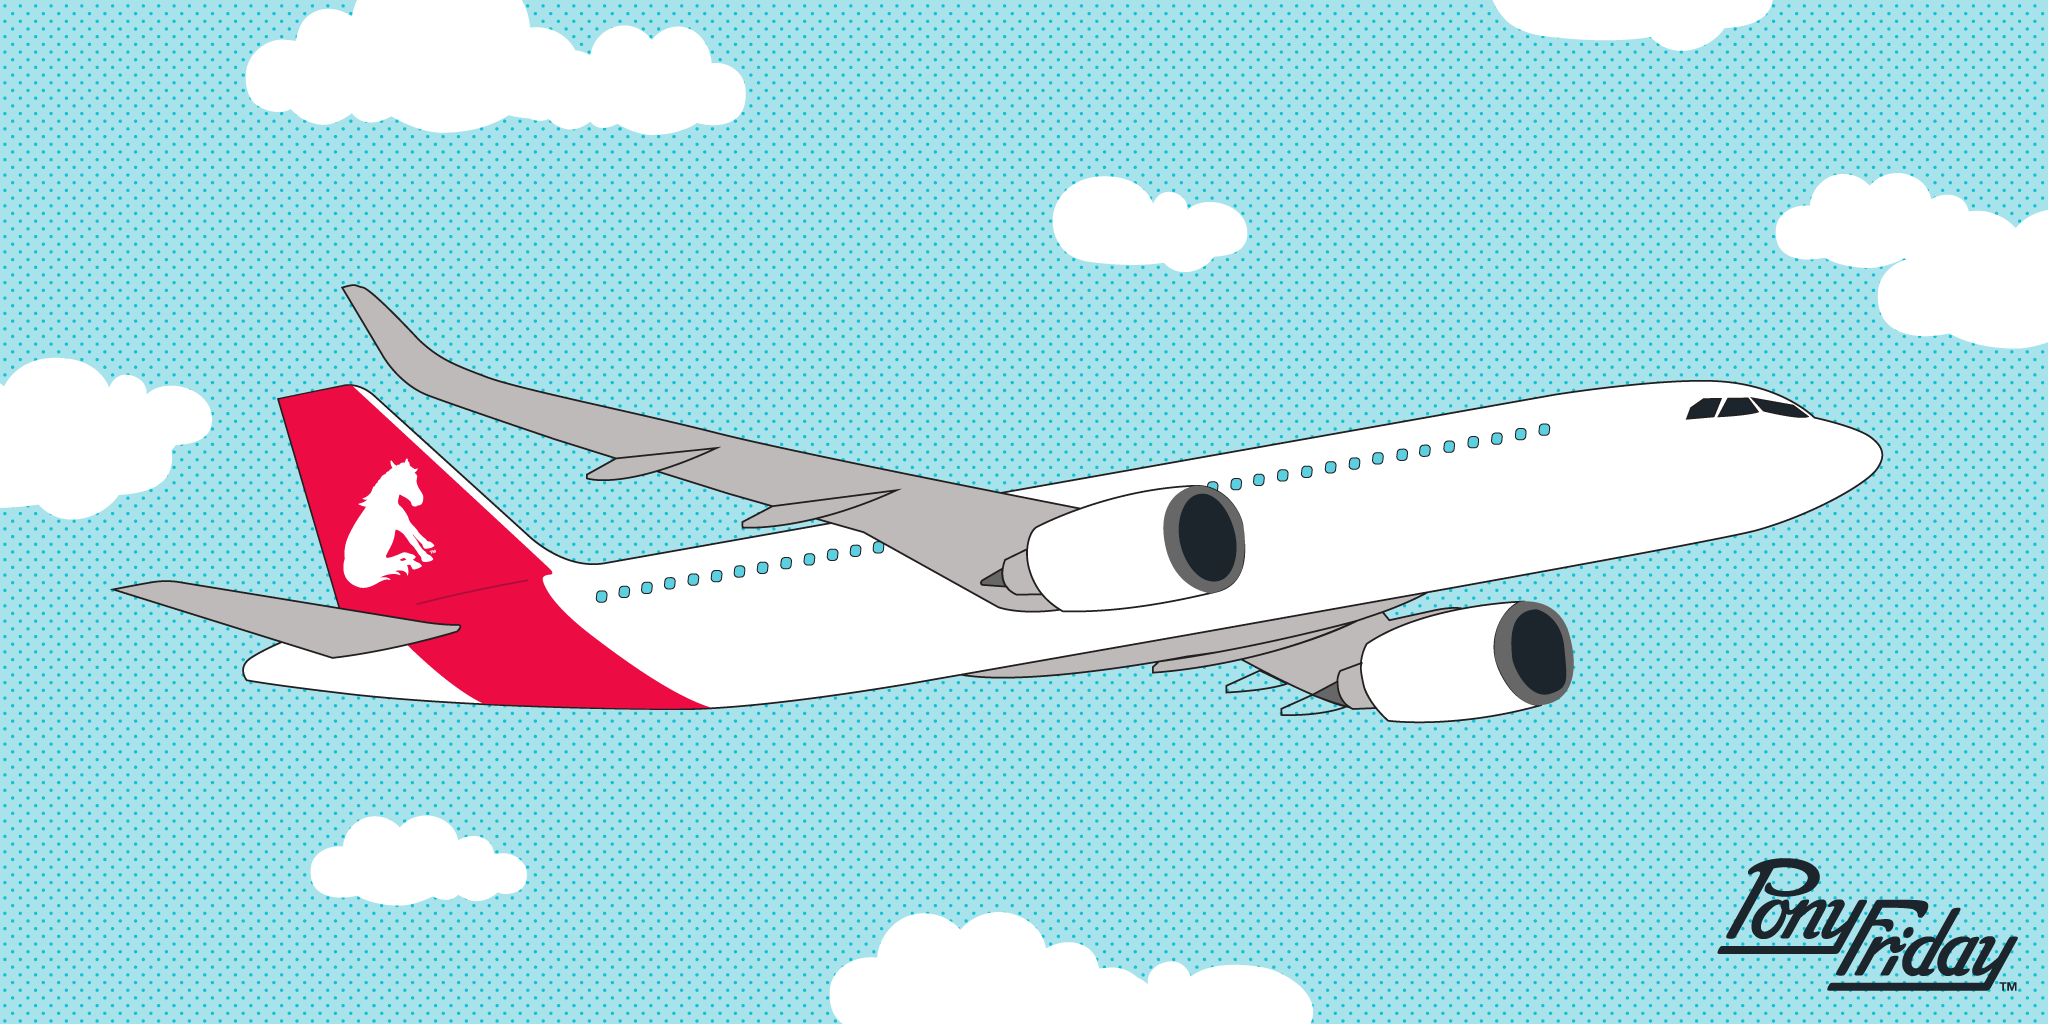 Pony-Friday-Flight-Airplane-Travel-Sky-Plane-Flying-Fly-Clouds-Travel-Blog-Header.png